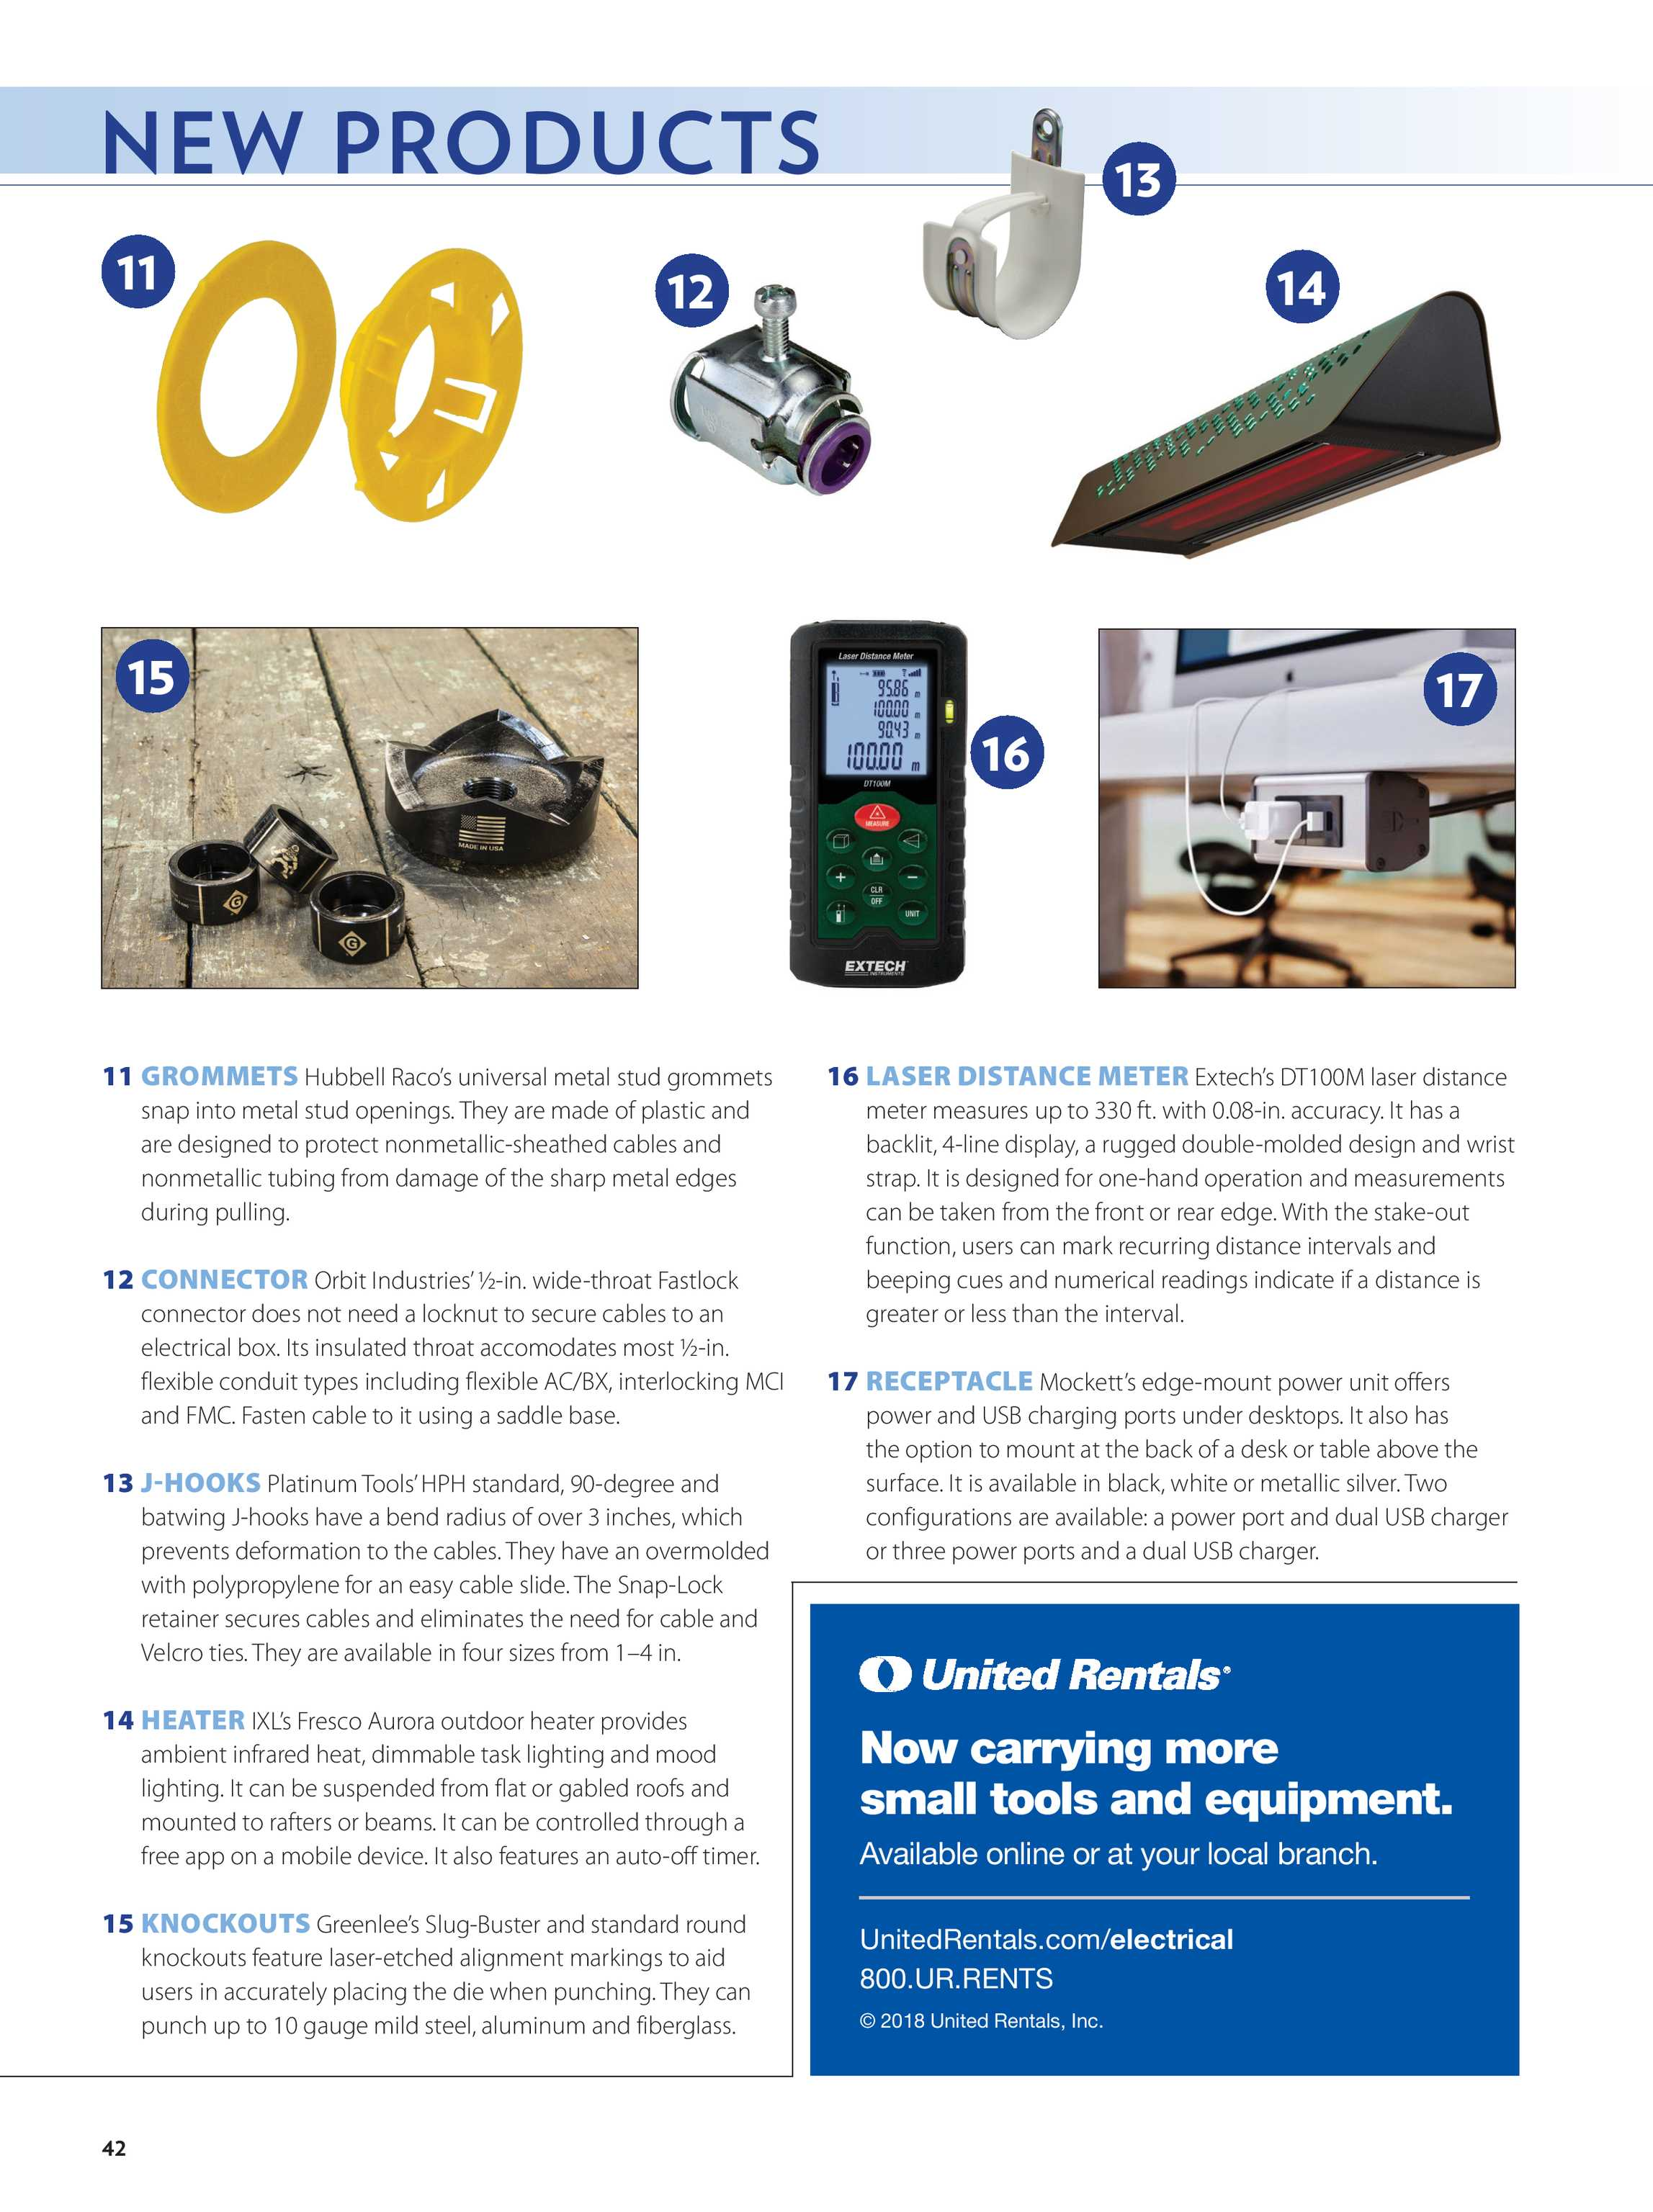 Electrical Contractor - July 2018 - page 42